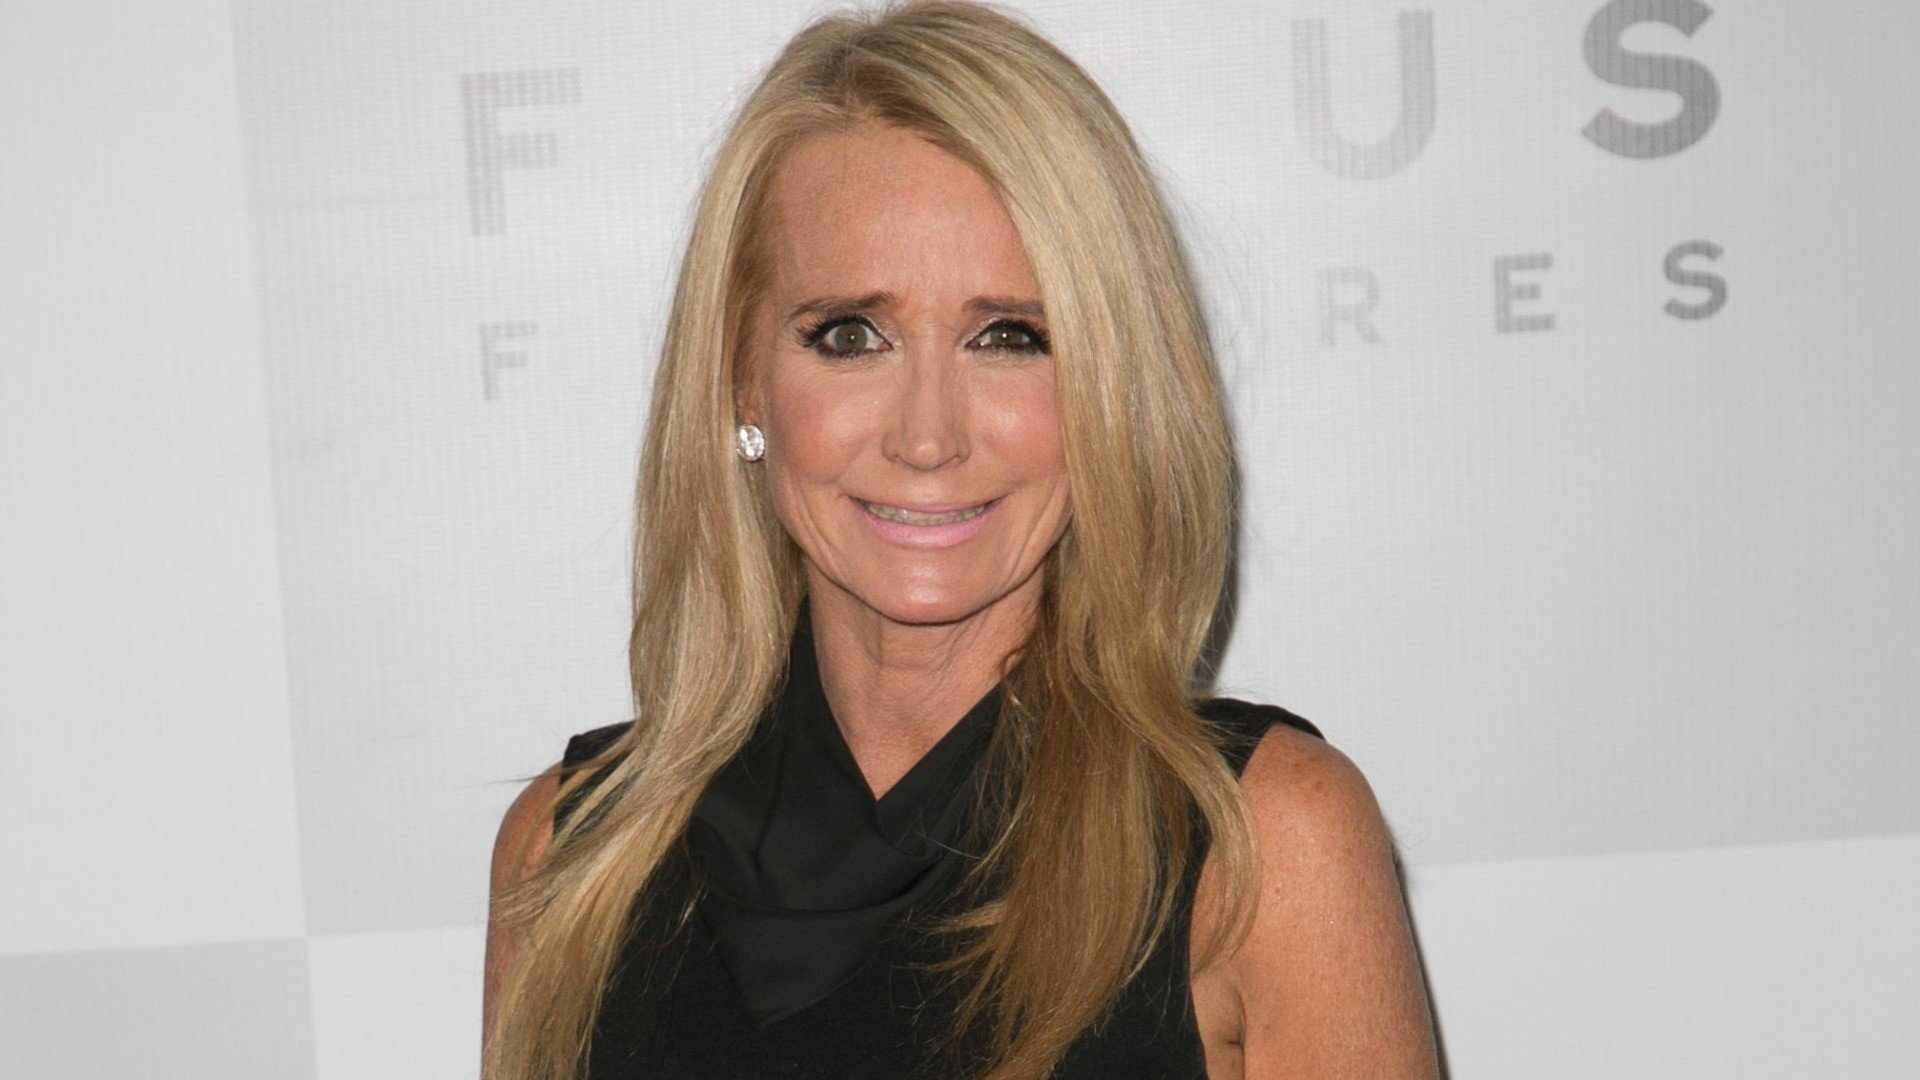 Real Housewives of Beverly Hills: Kim Richards tourne avec Brandi Glanville et Yolanda Foster